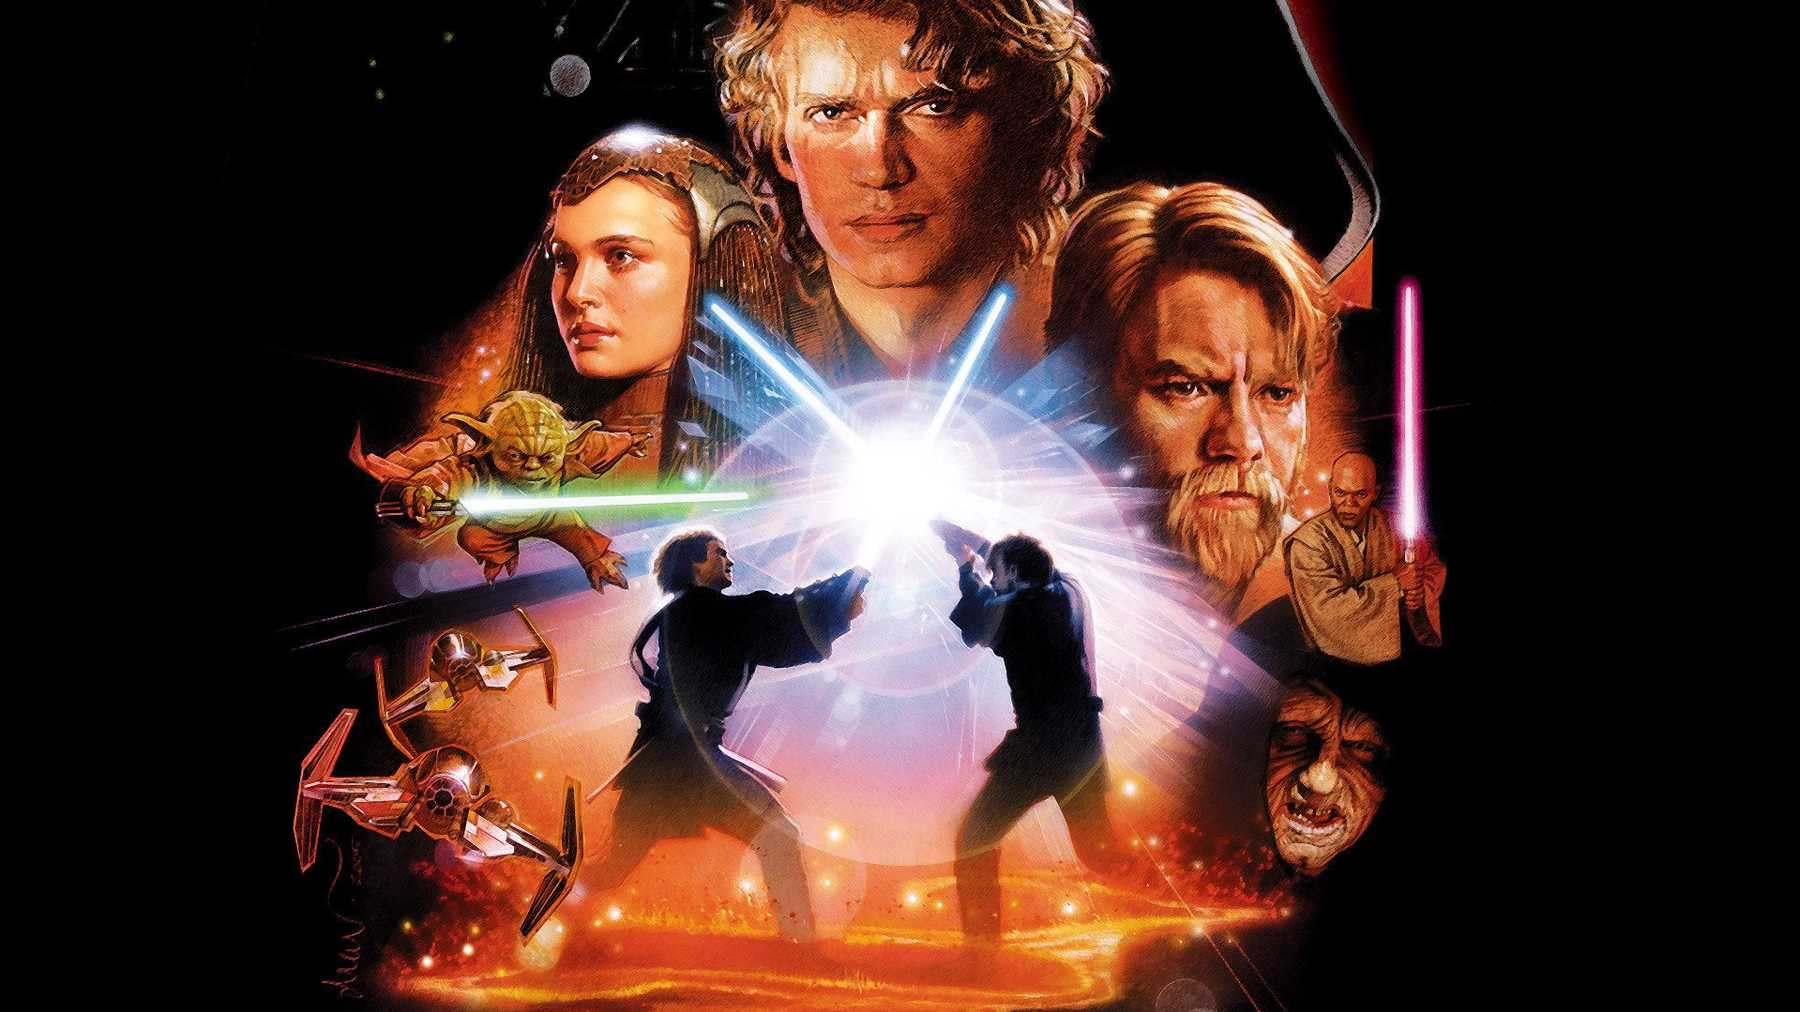 Star Wars Episode Iii Revenge Of The Sith Review Movie Empire